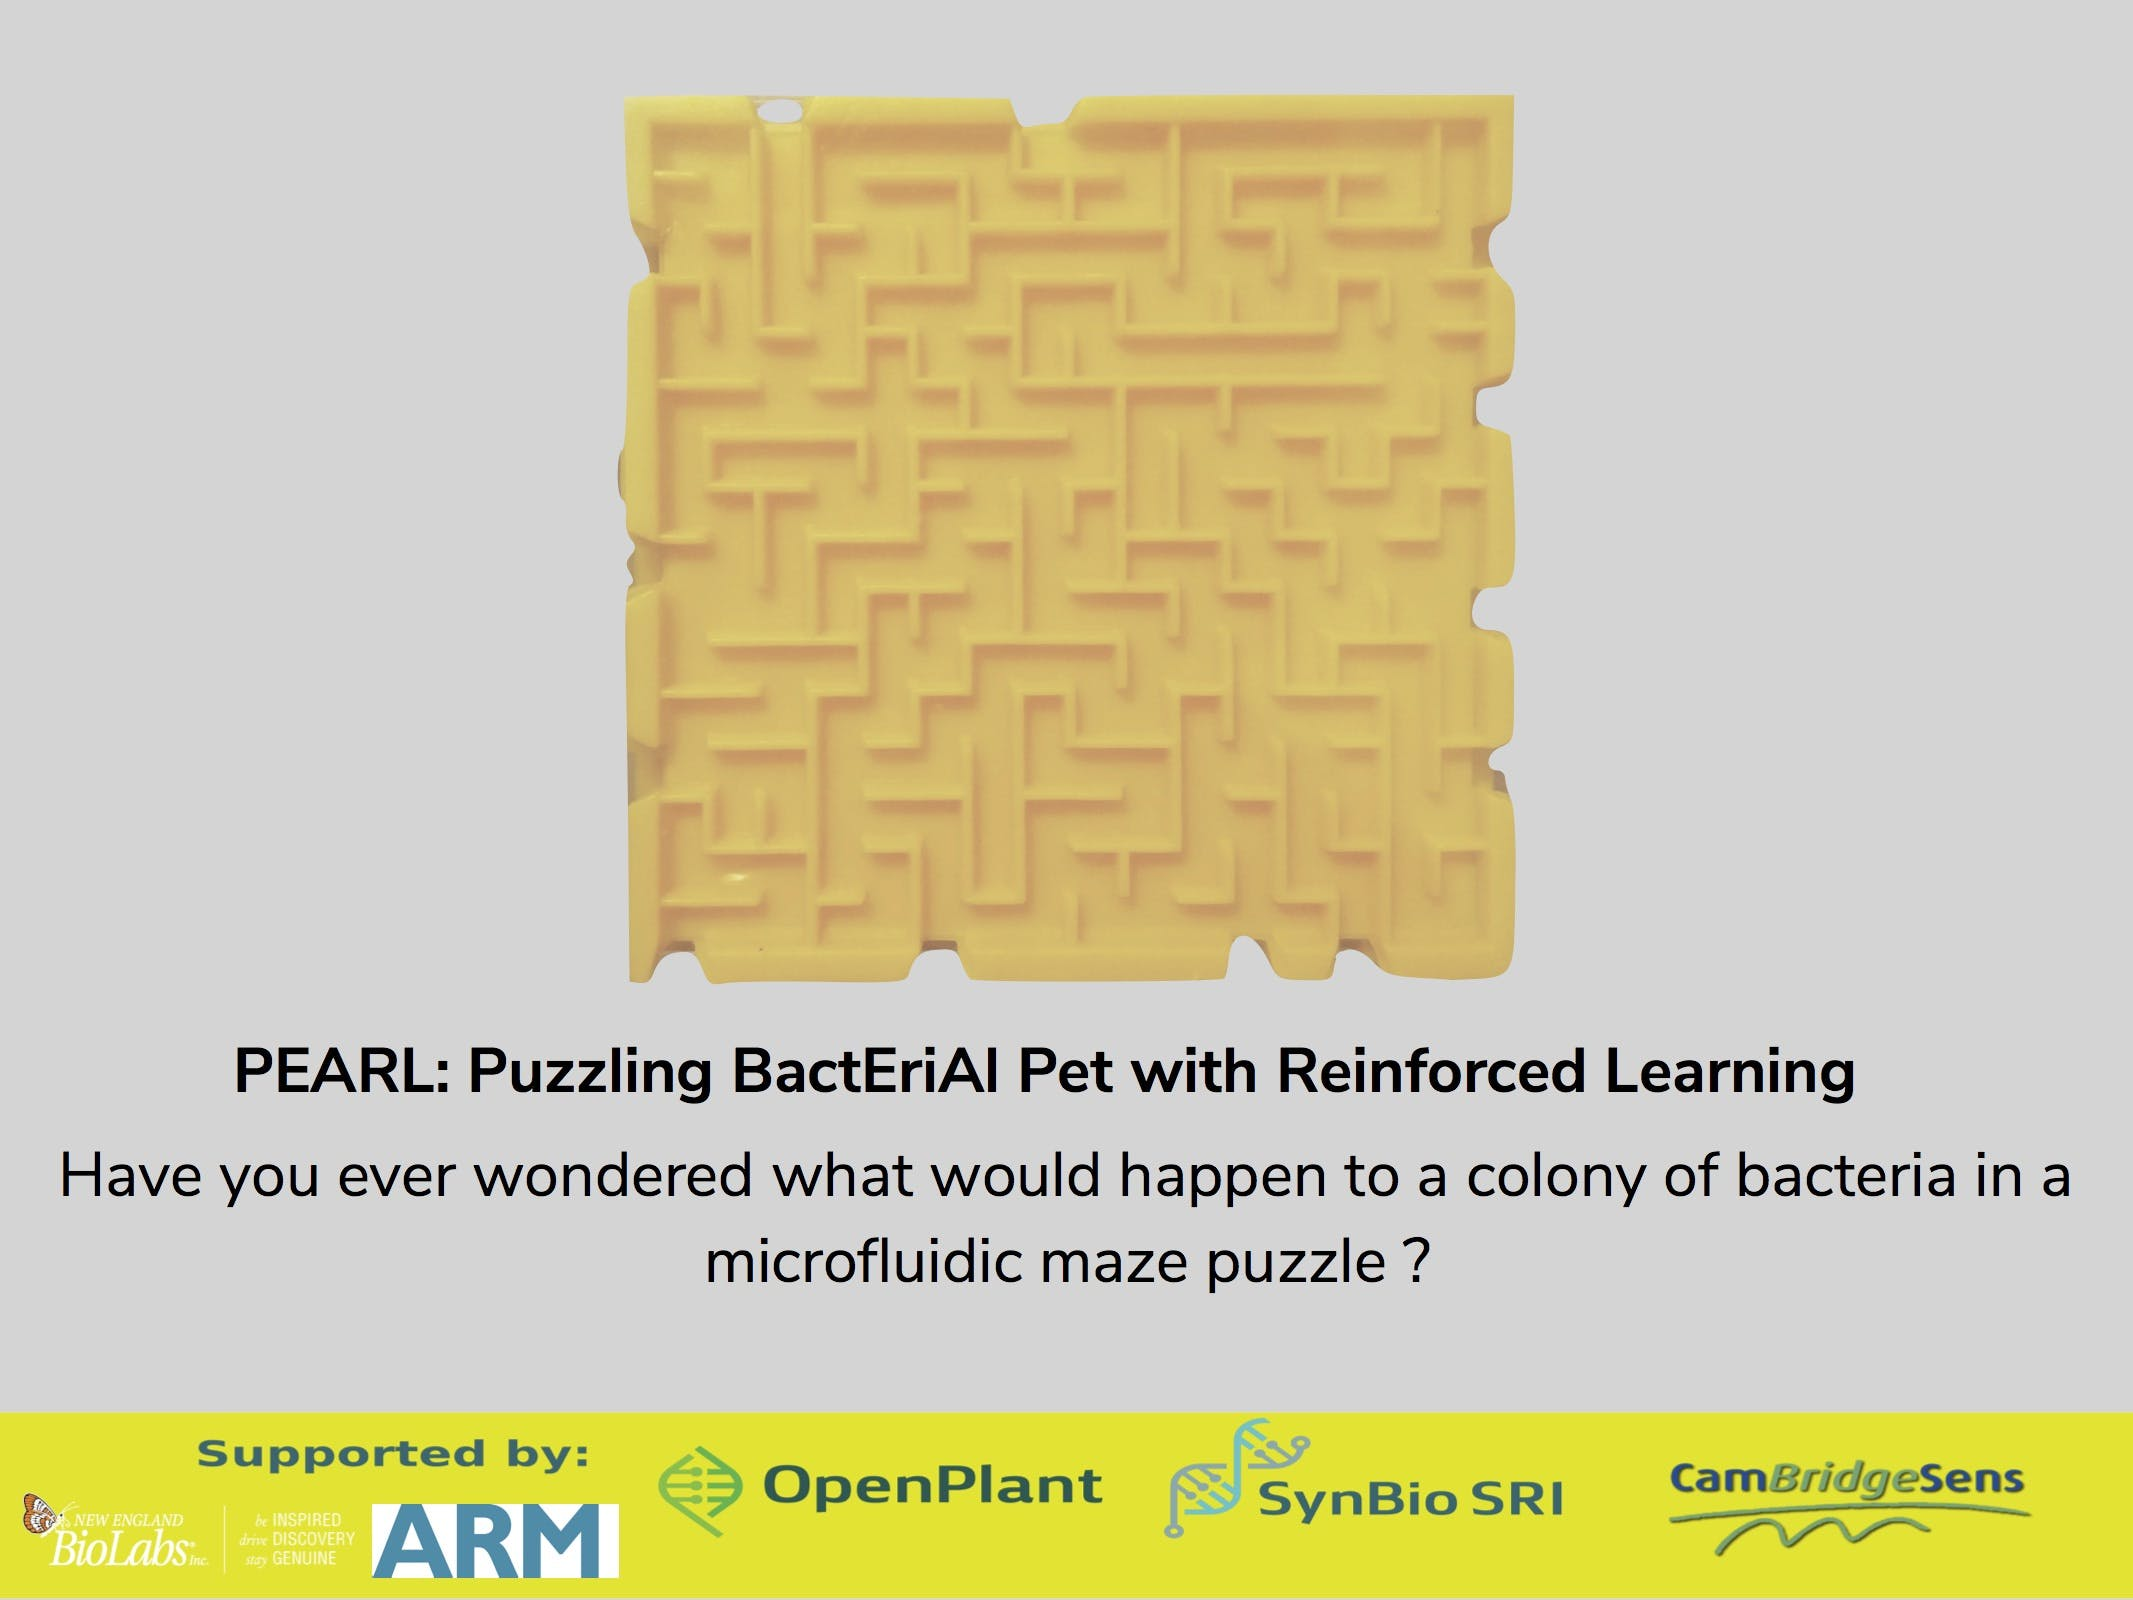 PEARL: Puzzling BactEriAl Pet With Reinforcement Learning